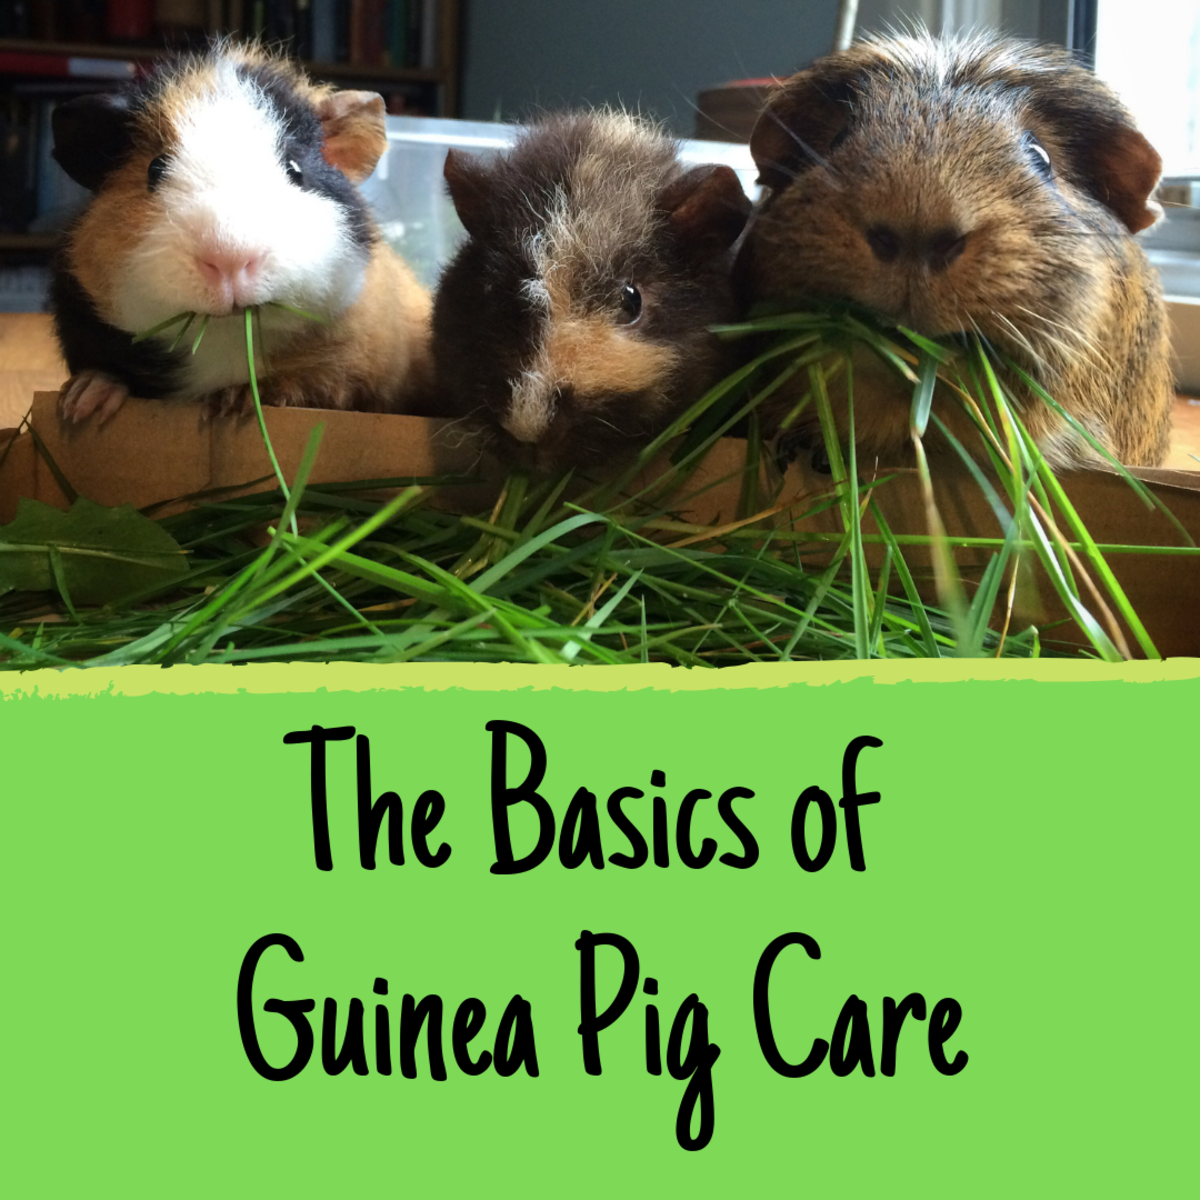 Are you an aspiring guinea pig owner? Find out what you need to know before bringing your new pets home.